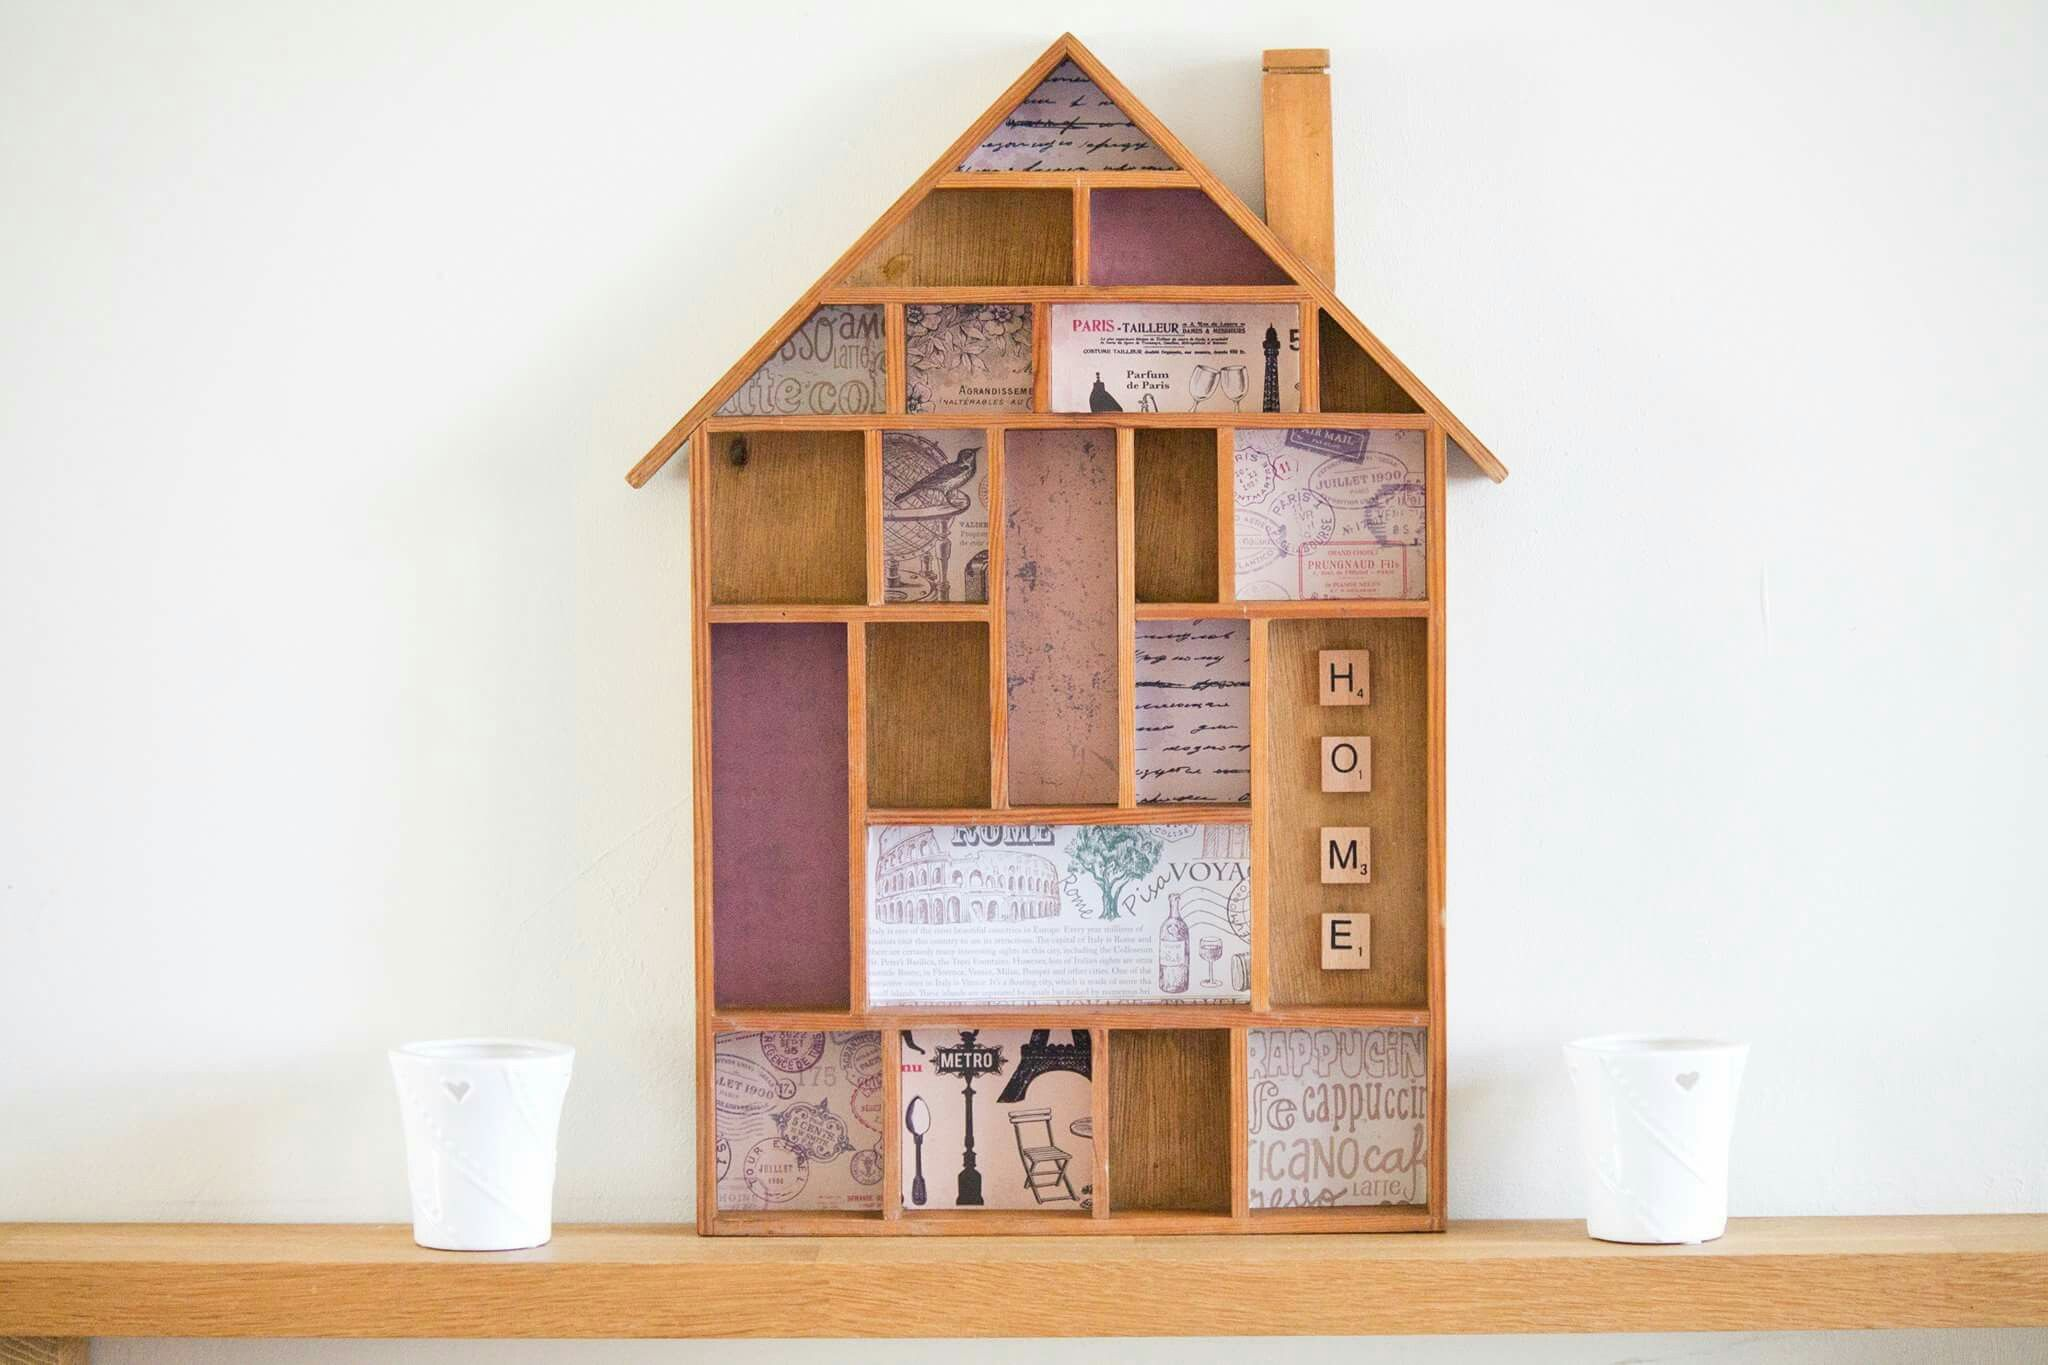 Upcycled Troika Hang House Shadow Box Display Frame Curios Miniature Display Shelves Miniature Display Frame Display Display Shelves